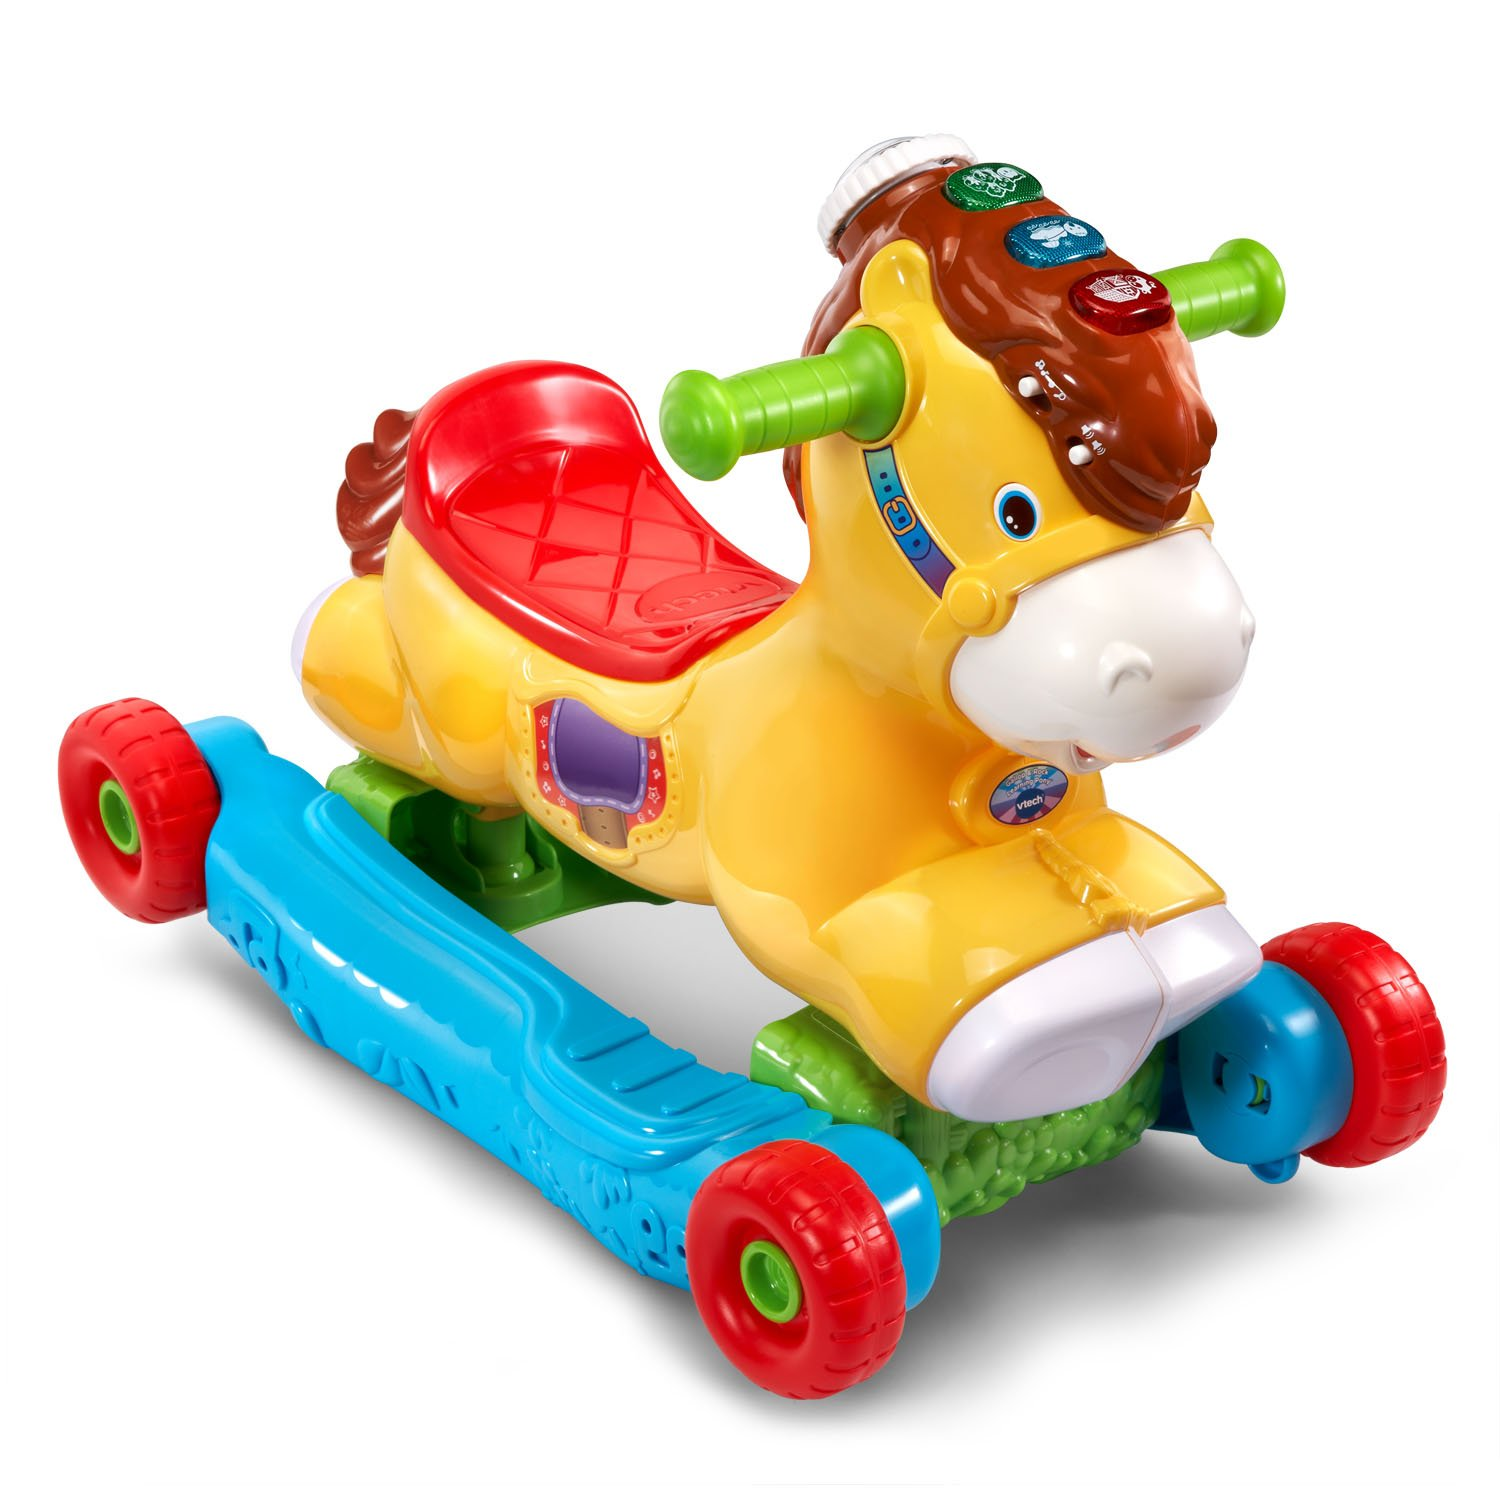 Rocking Toys For Boys : Ride on toys for year olds toddler kids riding children